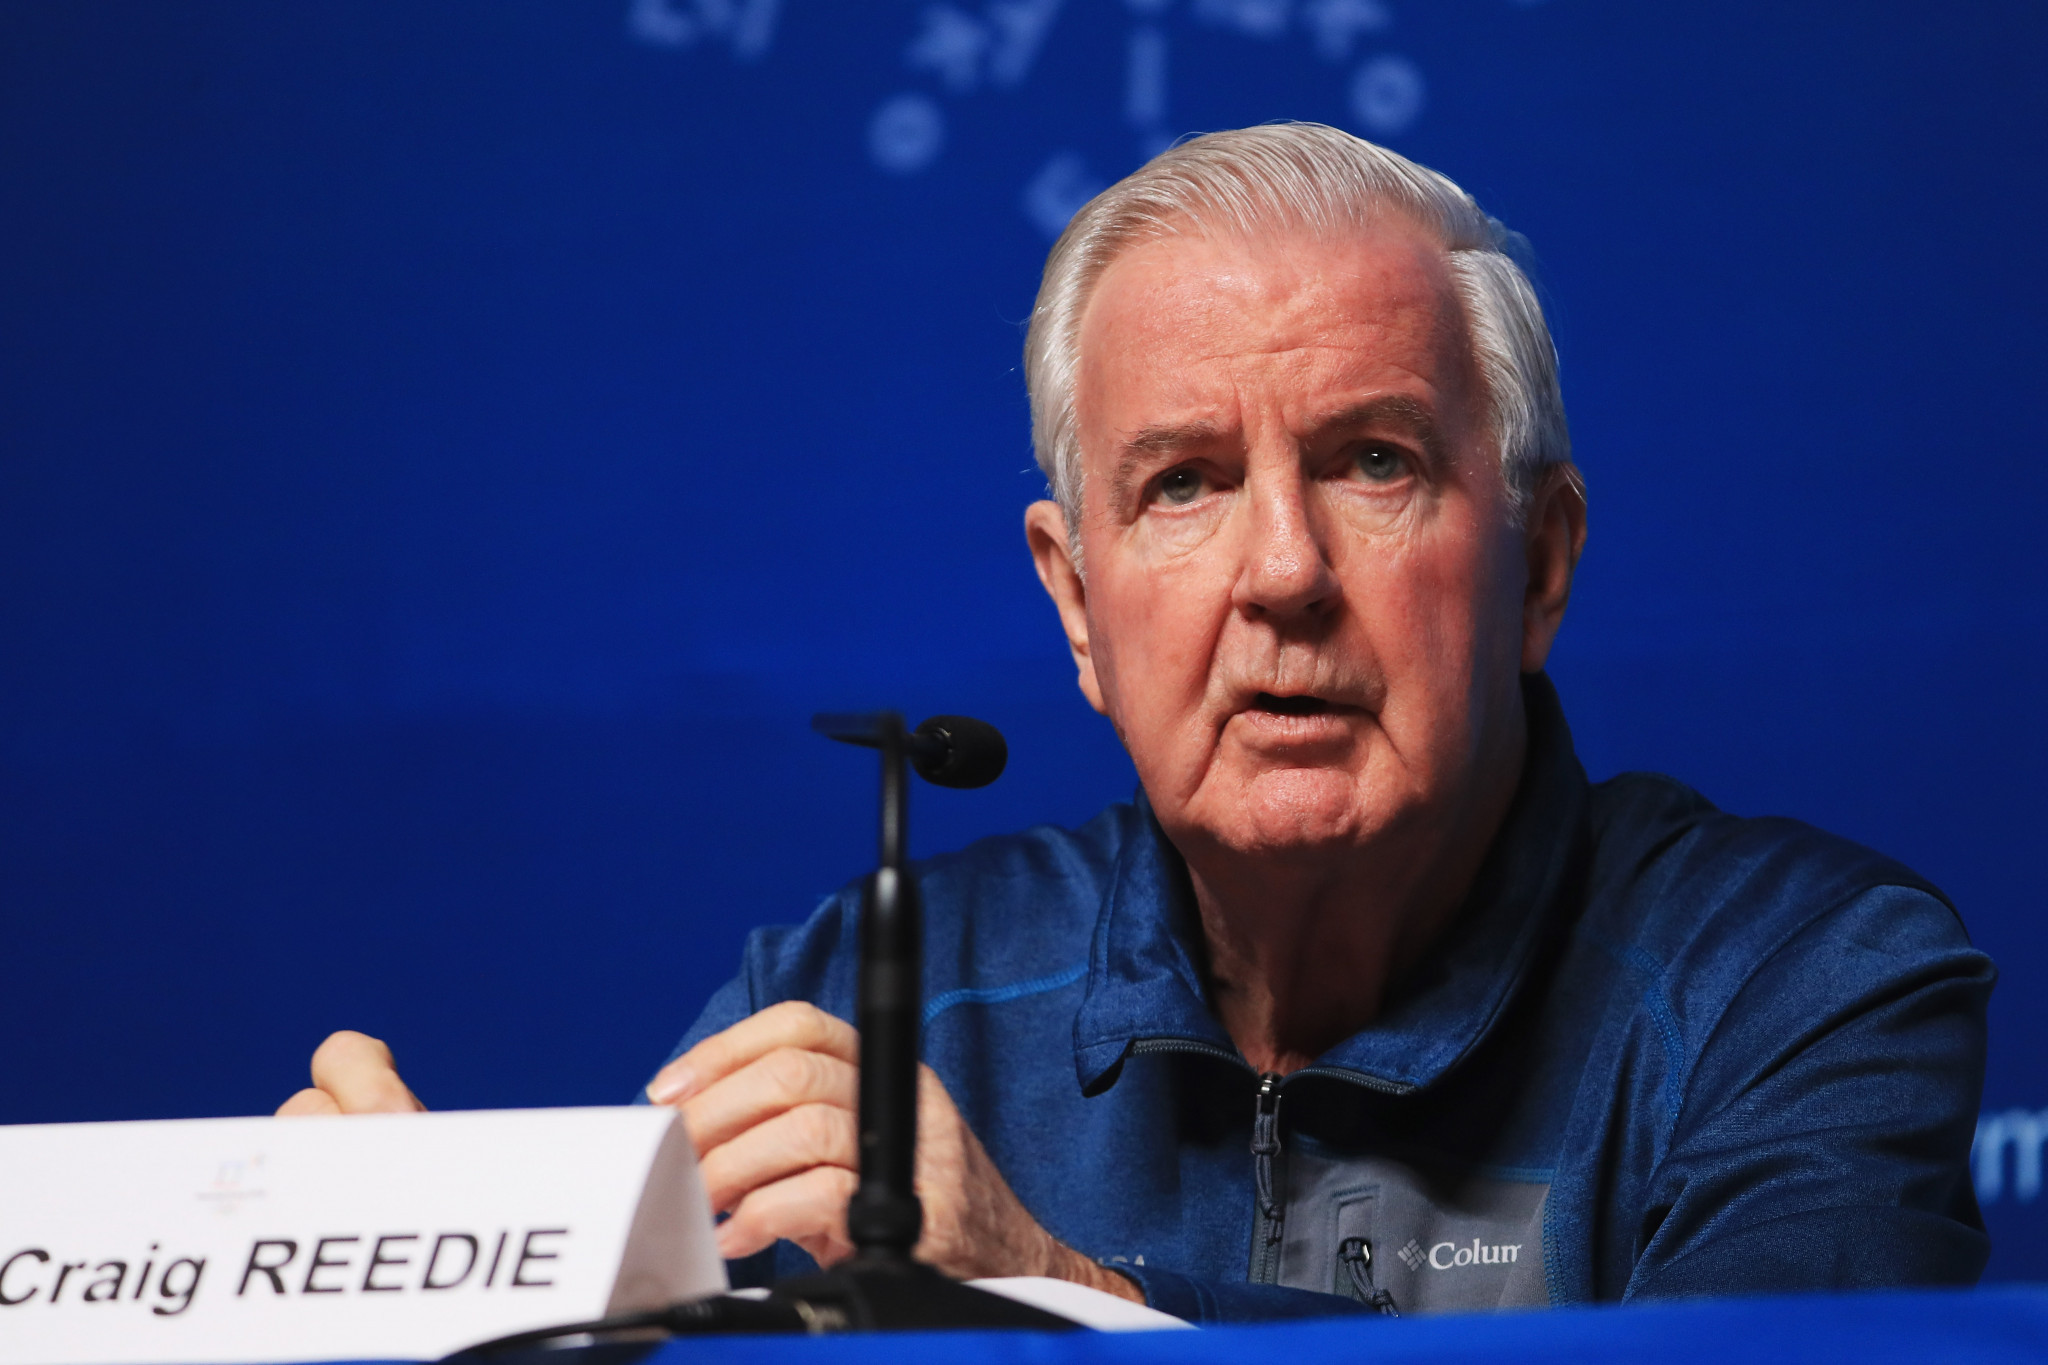 Sir Craig Reedie has revealed that WADA is still waiting from the Investigative Committee of Russia about working together ©Getty Images